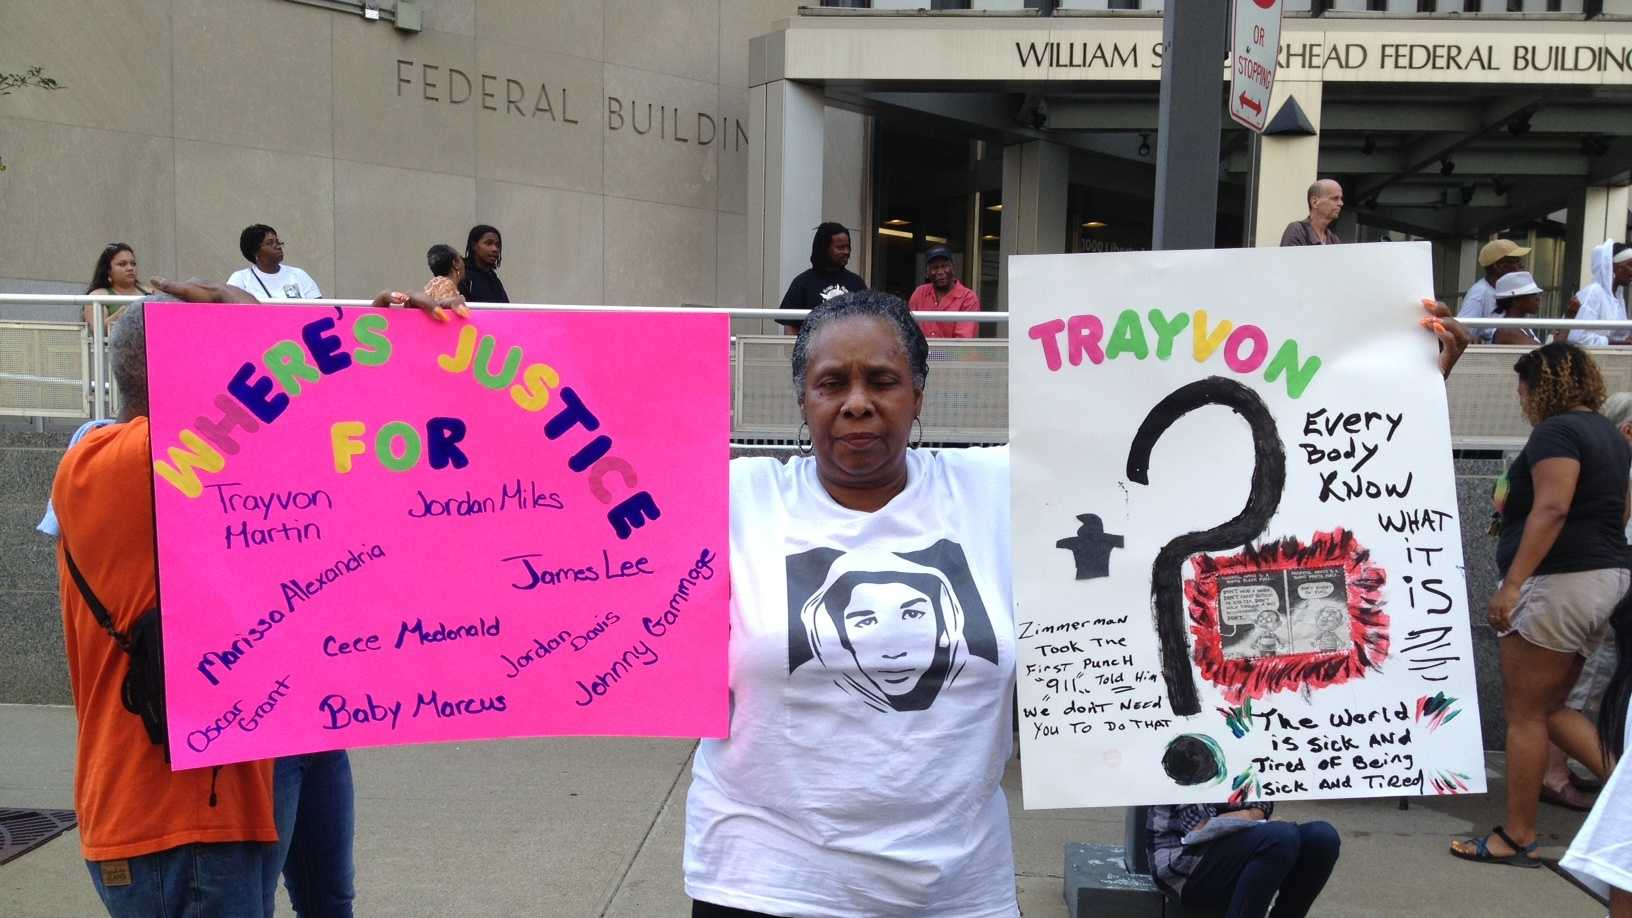 Justice for Trayvon rally in Pittsburgh